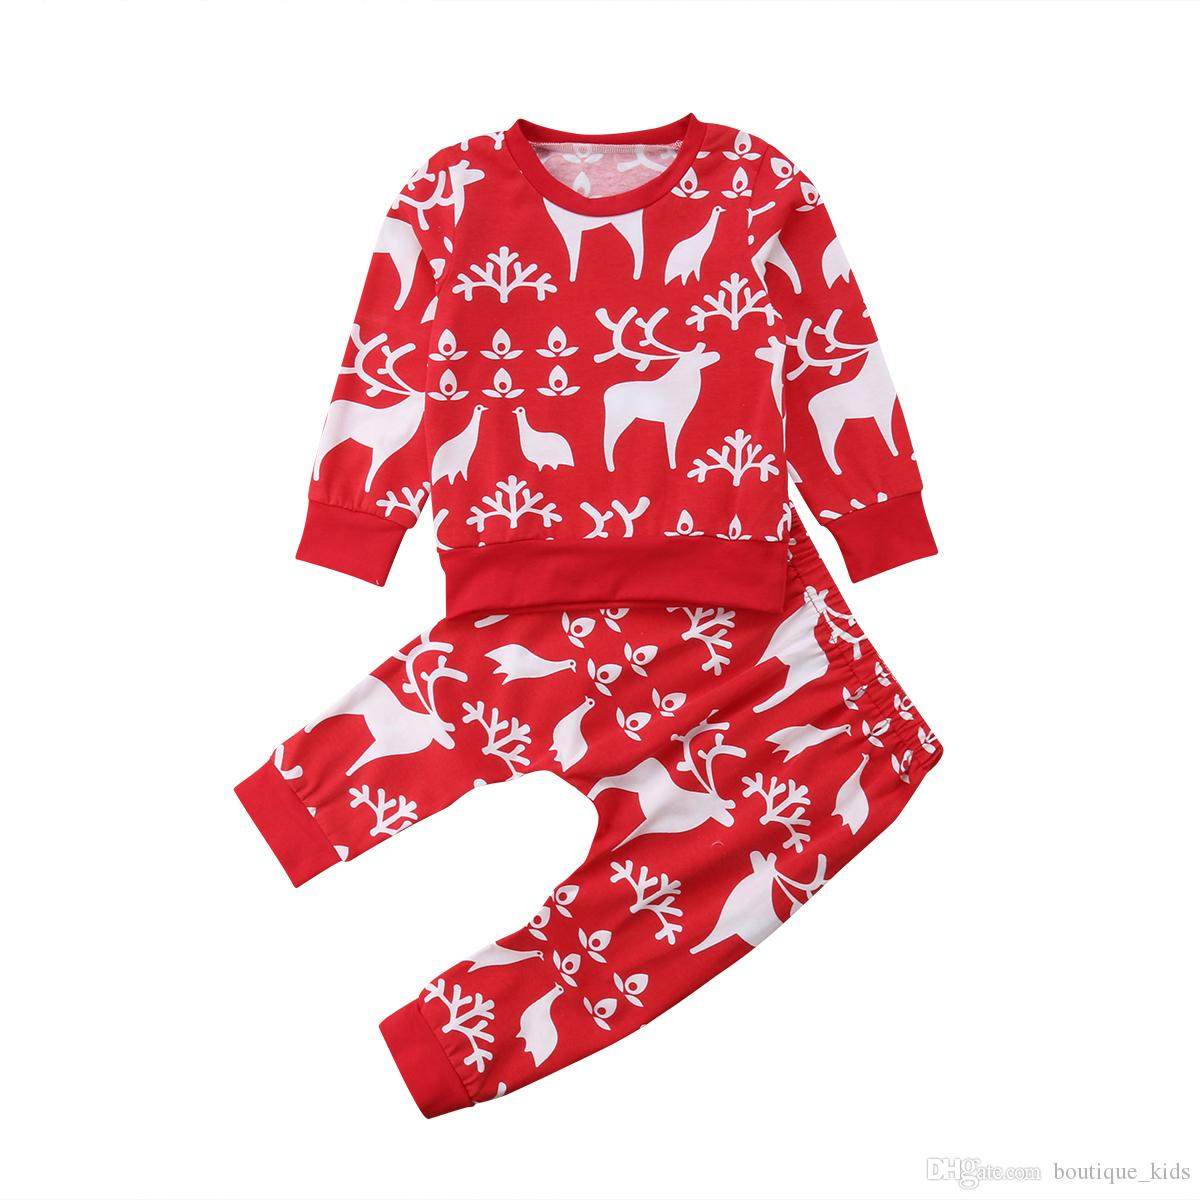 2020 2019 Newborn Baby Boy Clothes Kids Christmas Clothing Girls Red Xmas Reindeer Tops Pants Outfits Toddler Children Boutique Clothing Set From Boutique Kids 13 13 Dhgate Com